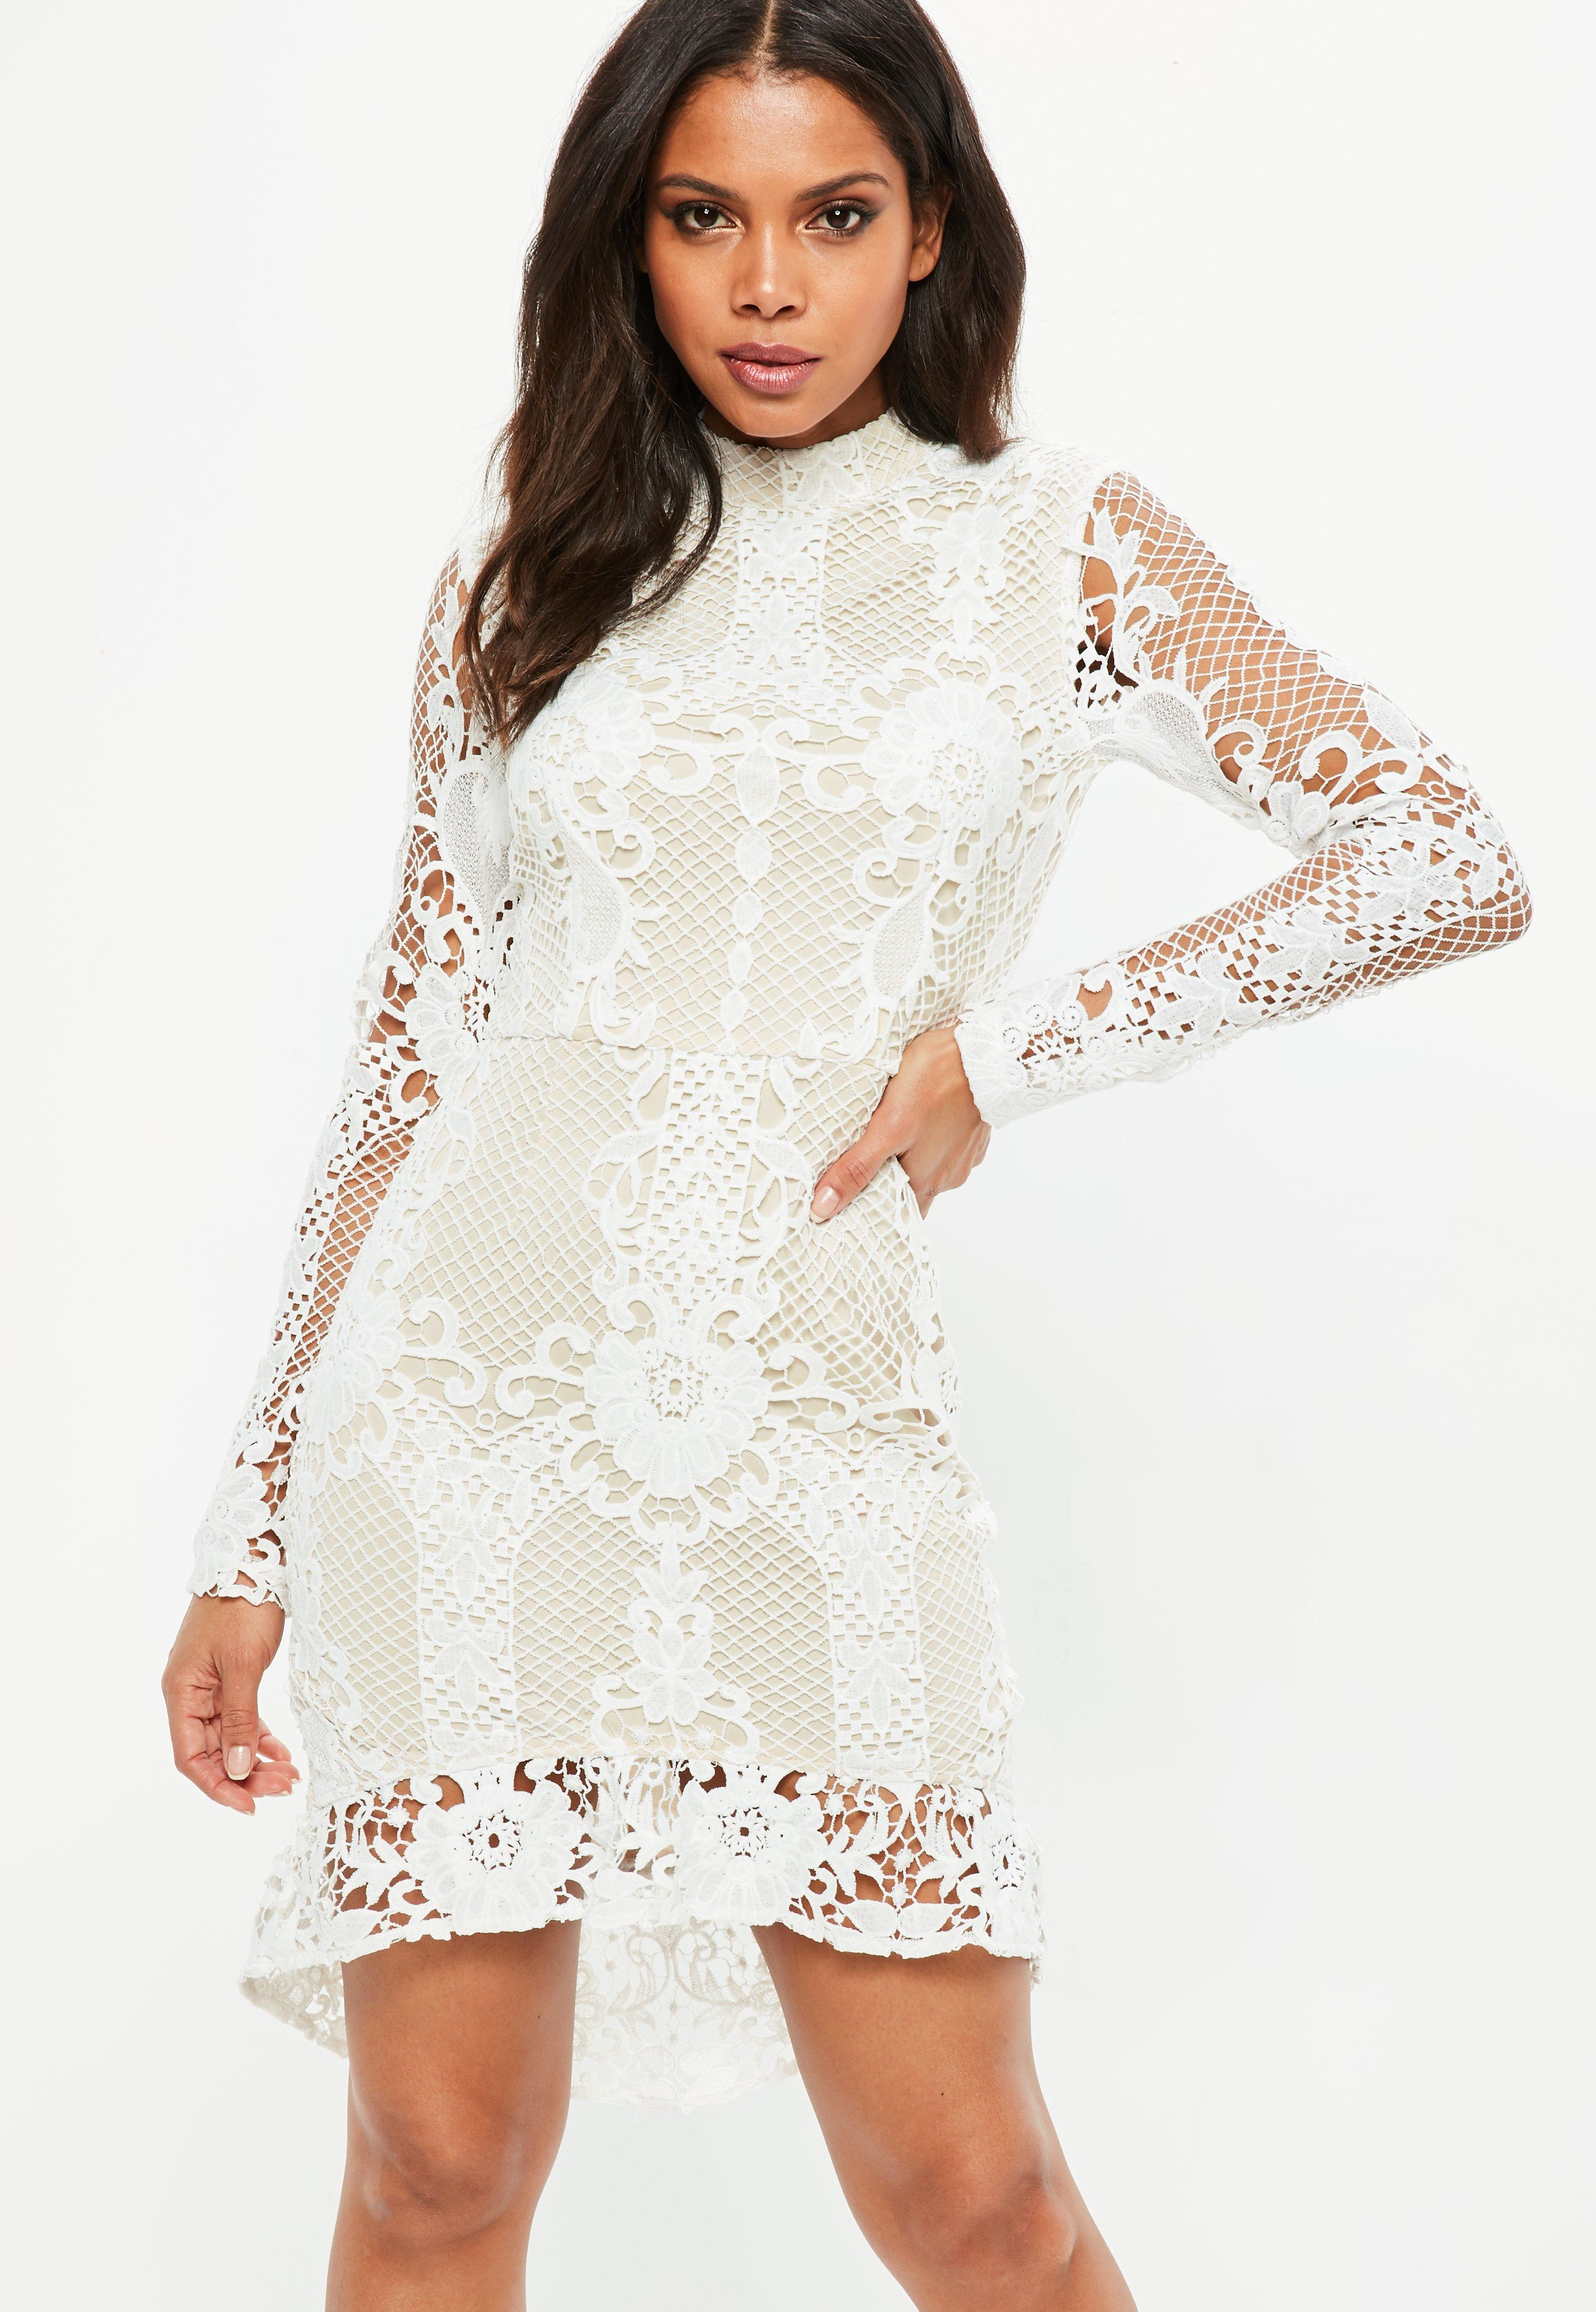 Lace Dresses - Short & Long Sleeved Lace Dress | Missguided